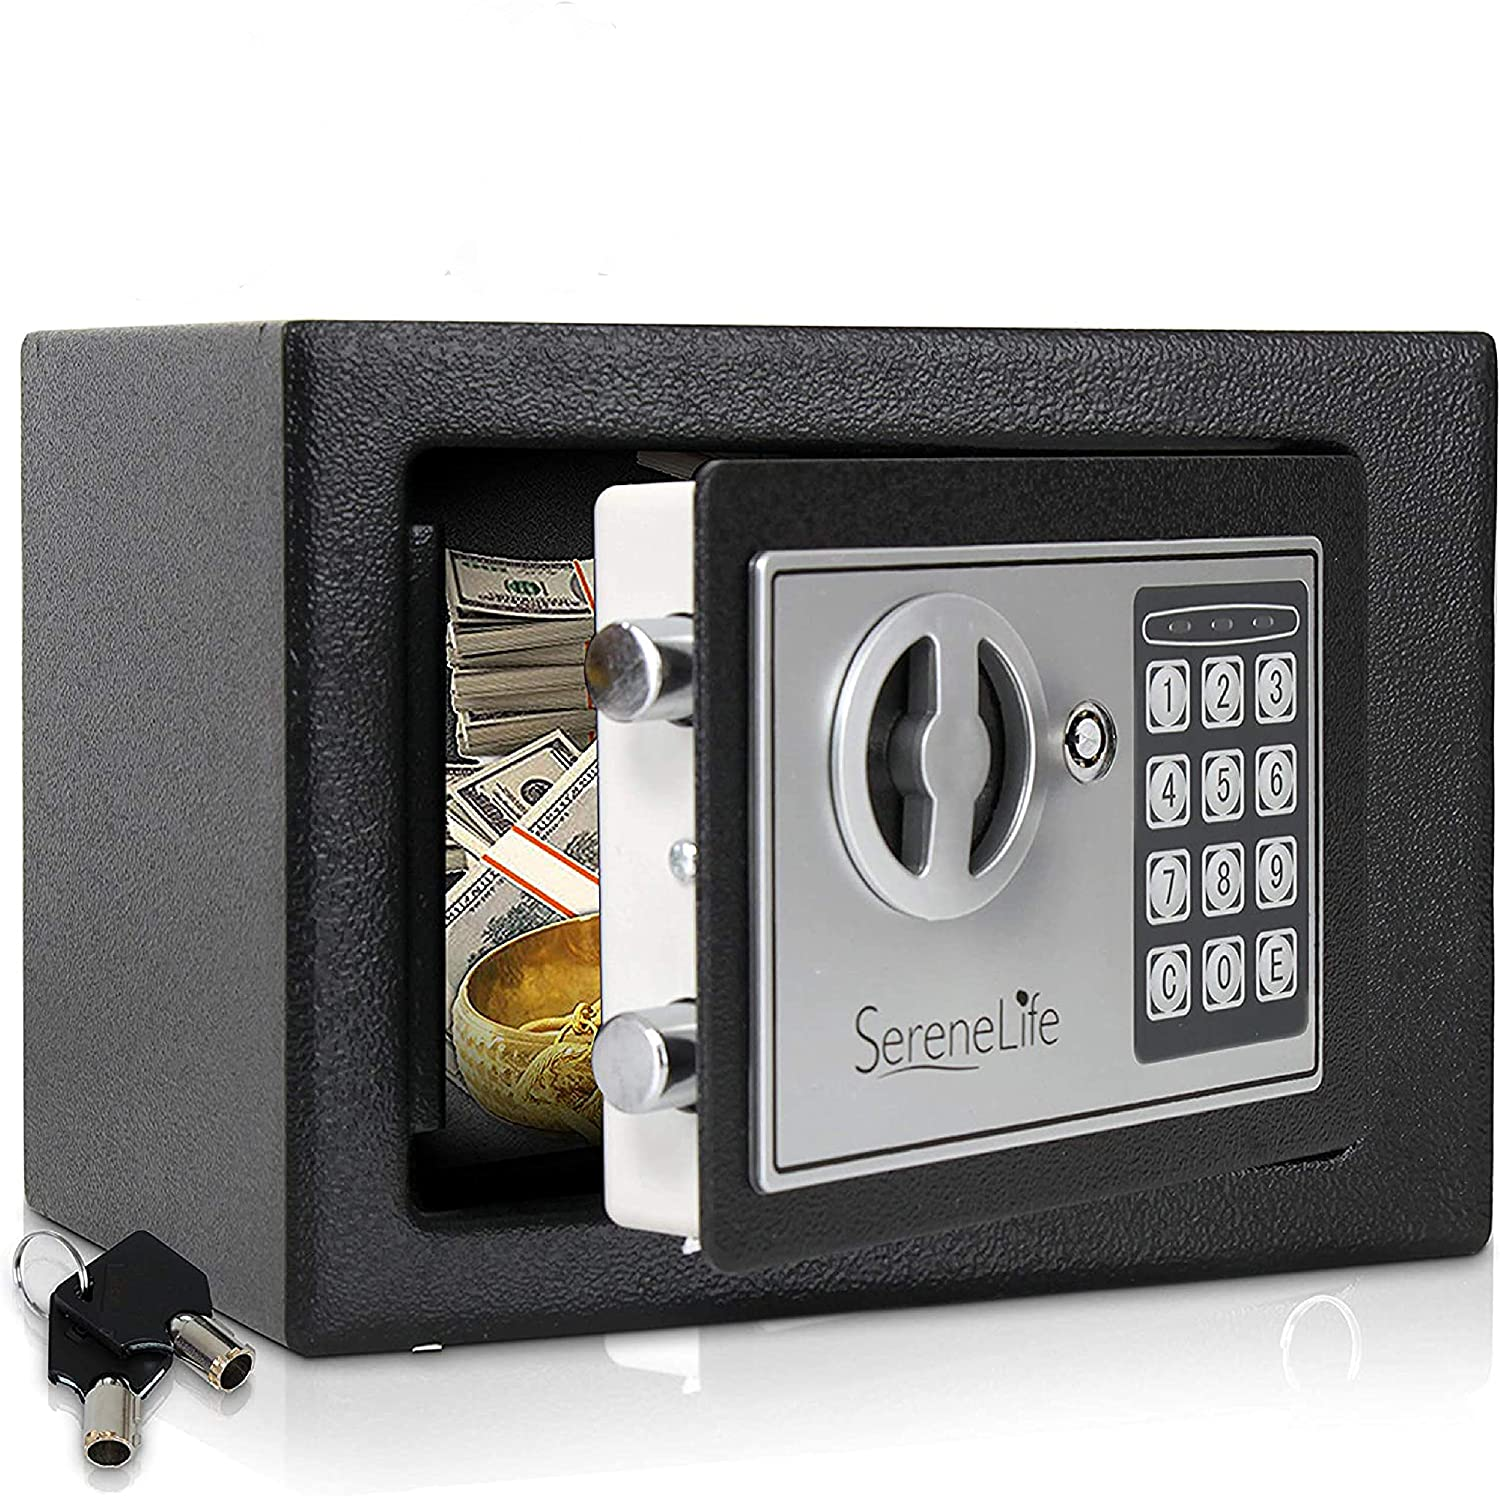 Digital Electronic Mechanical Lock Safe - Fireproof Dual Locking Security Storage Deposit Drop Box with Wall and Floor Mount Bolt, 2 Key, 4 AA Battery - File Gun Cash Jewelry - SereneLife SLSFE11